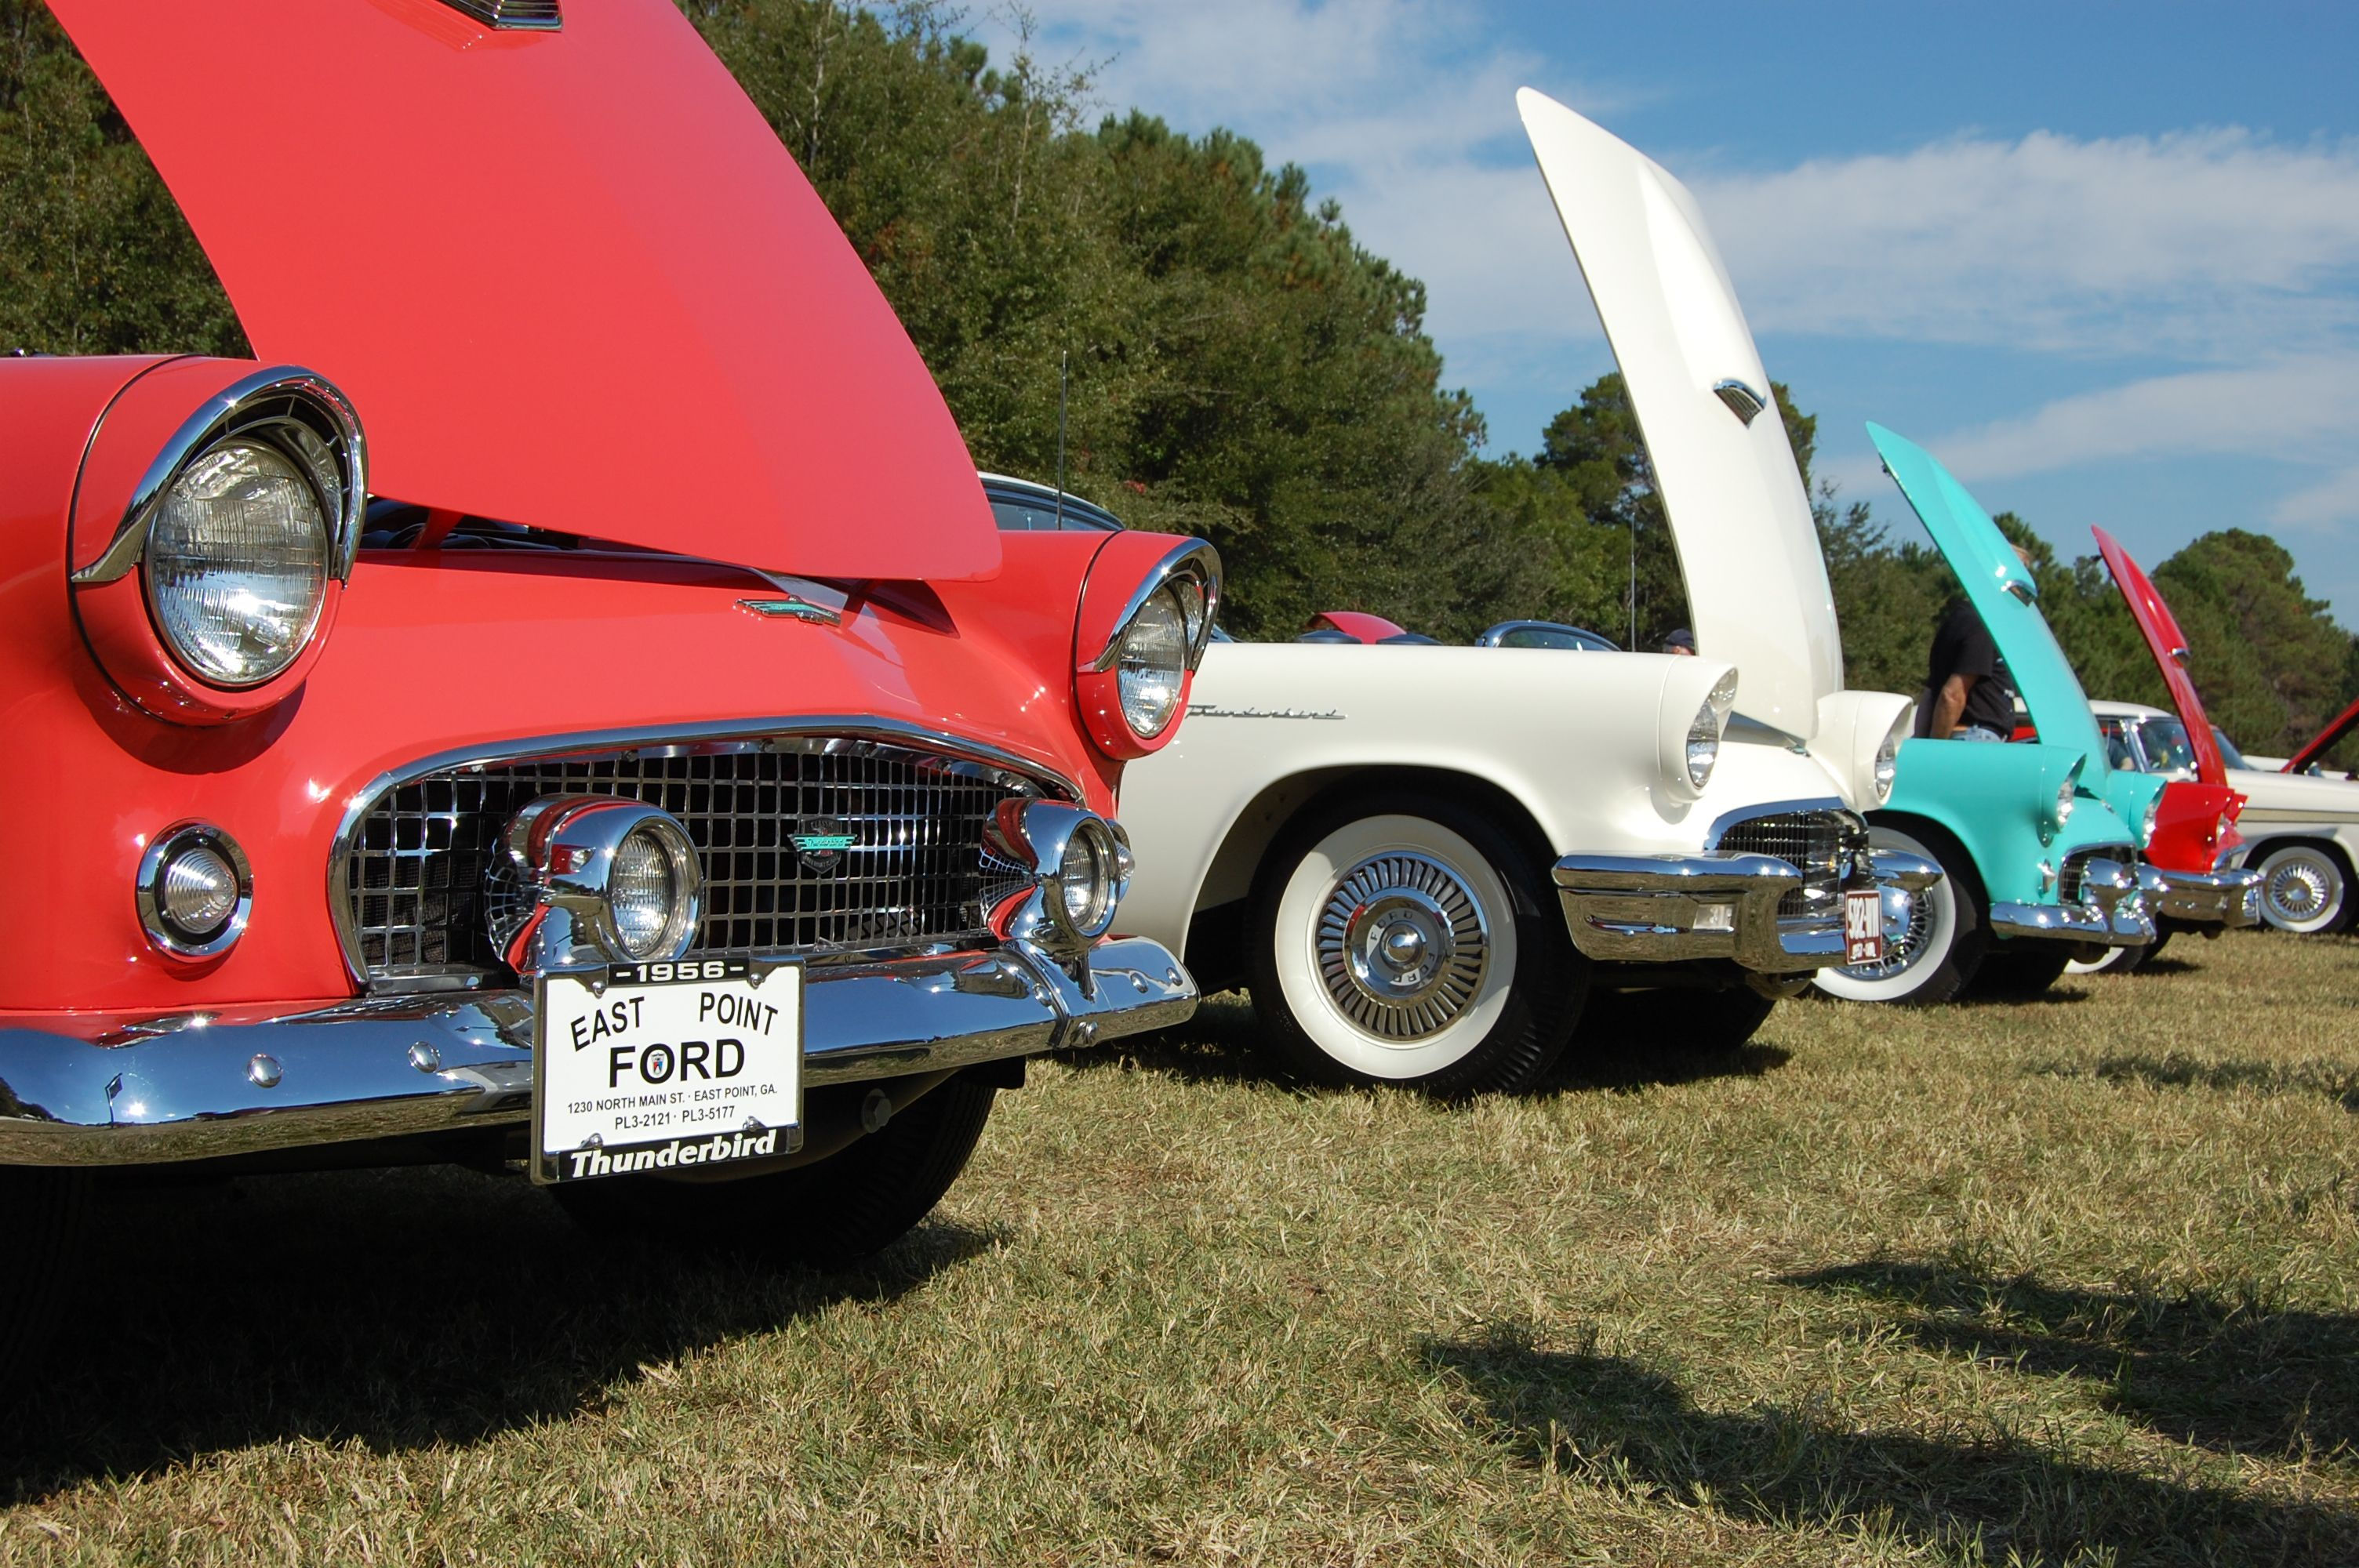 Insider Tips On How To Do A Golf Trip On Hilton Head Island - Hilton head car show